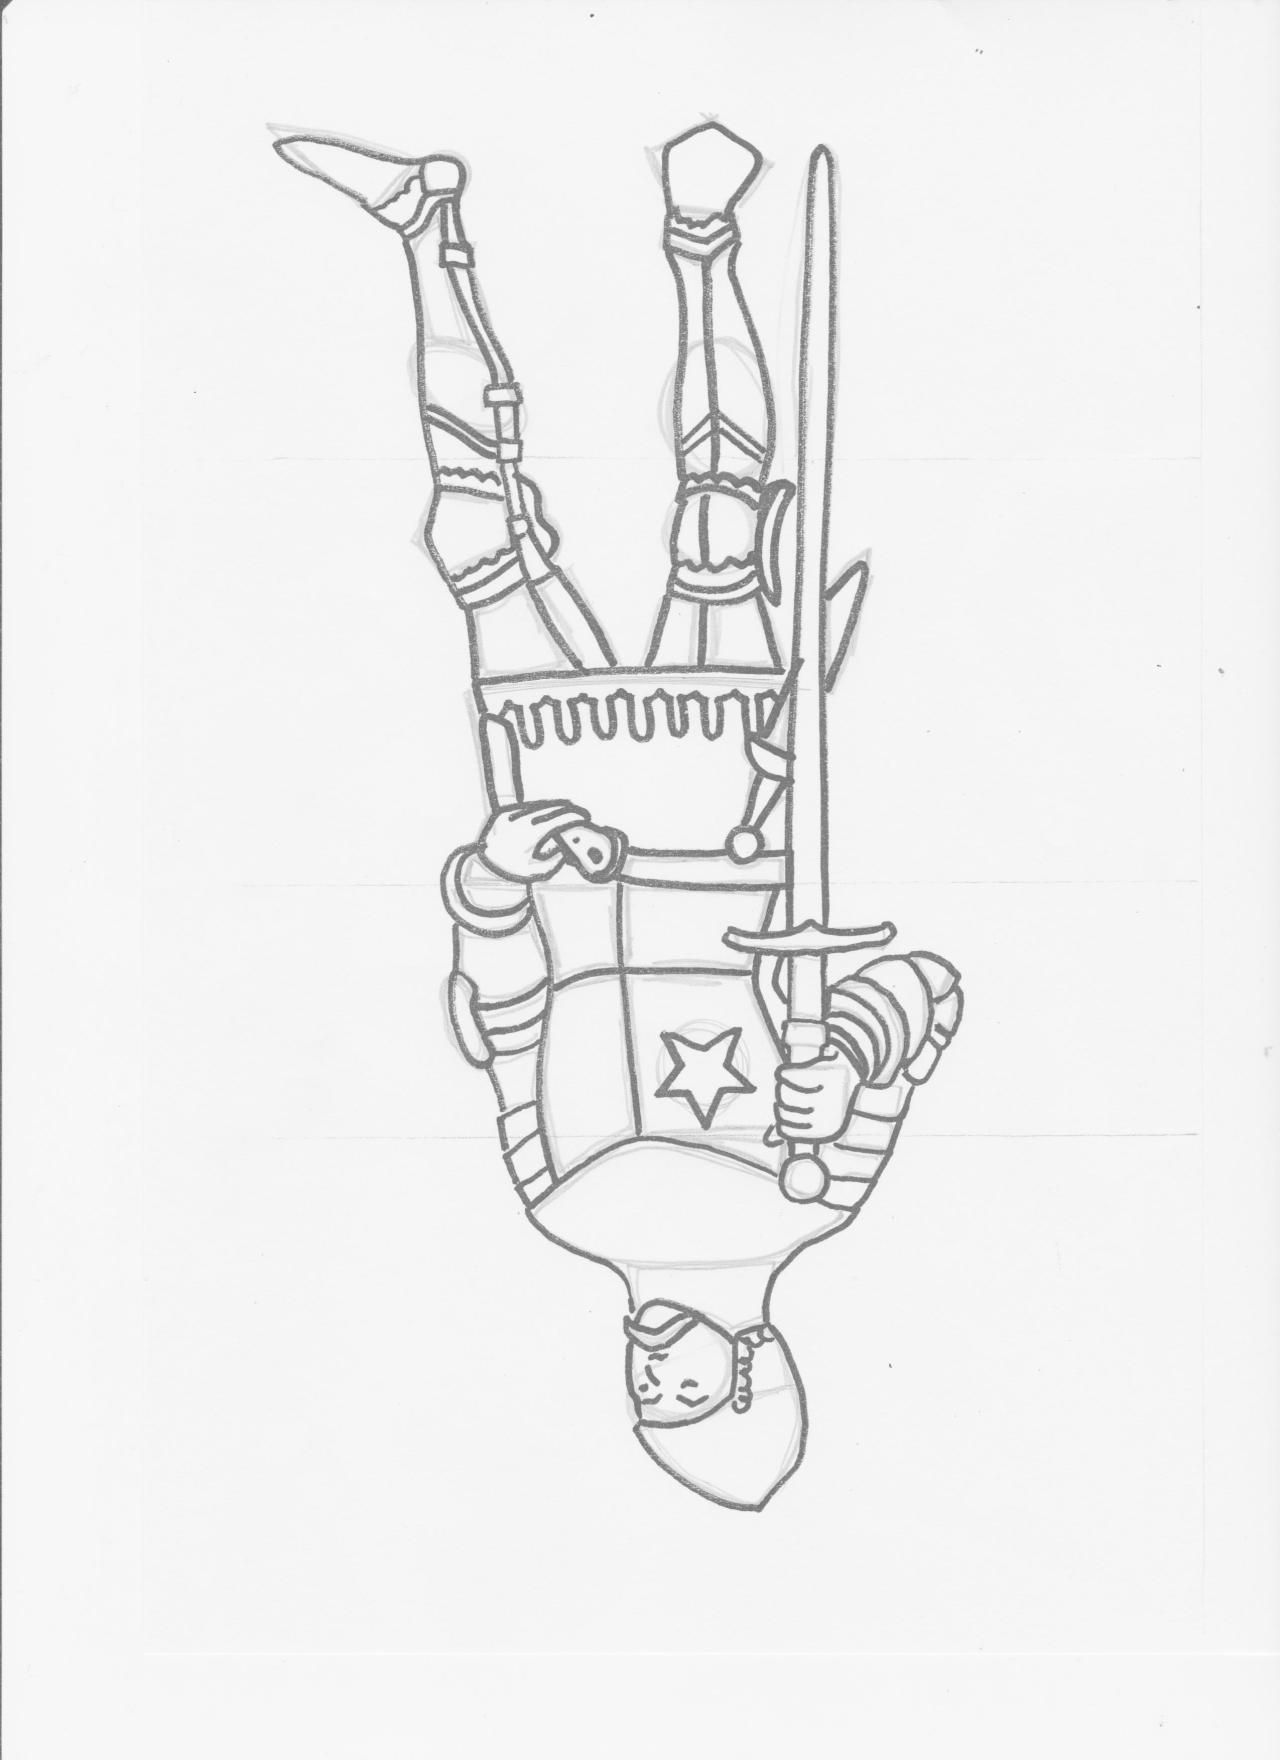 Me Val Themed Upside Down Drawing Week 3 Classical